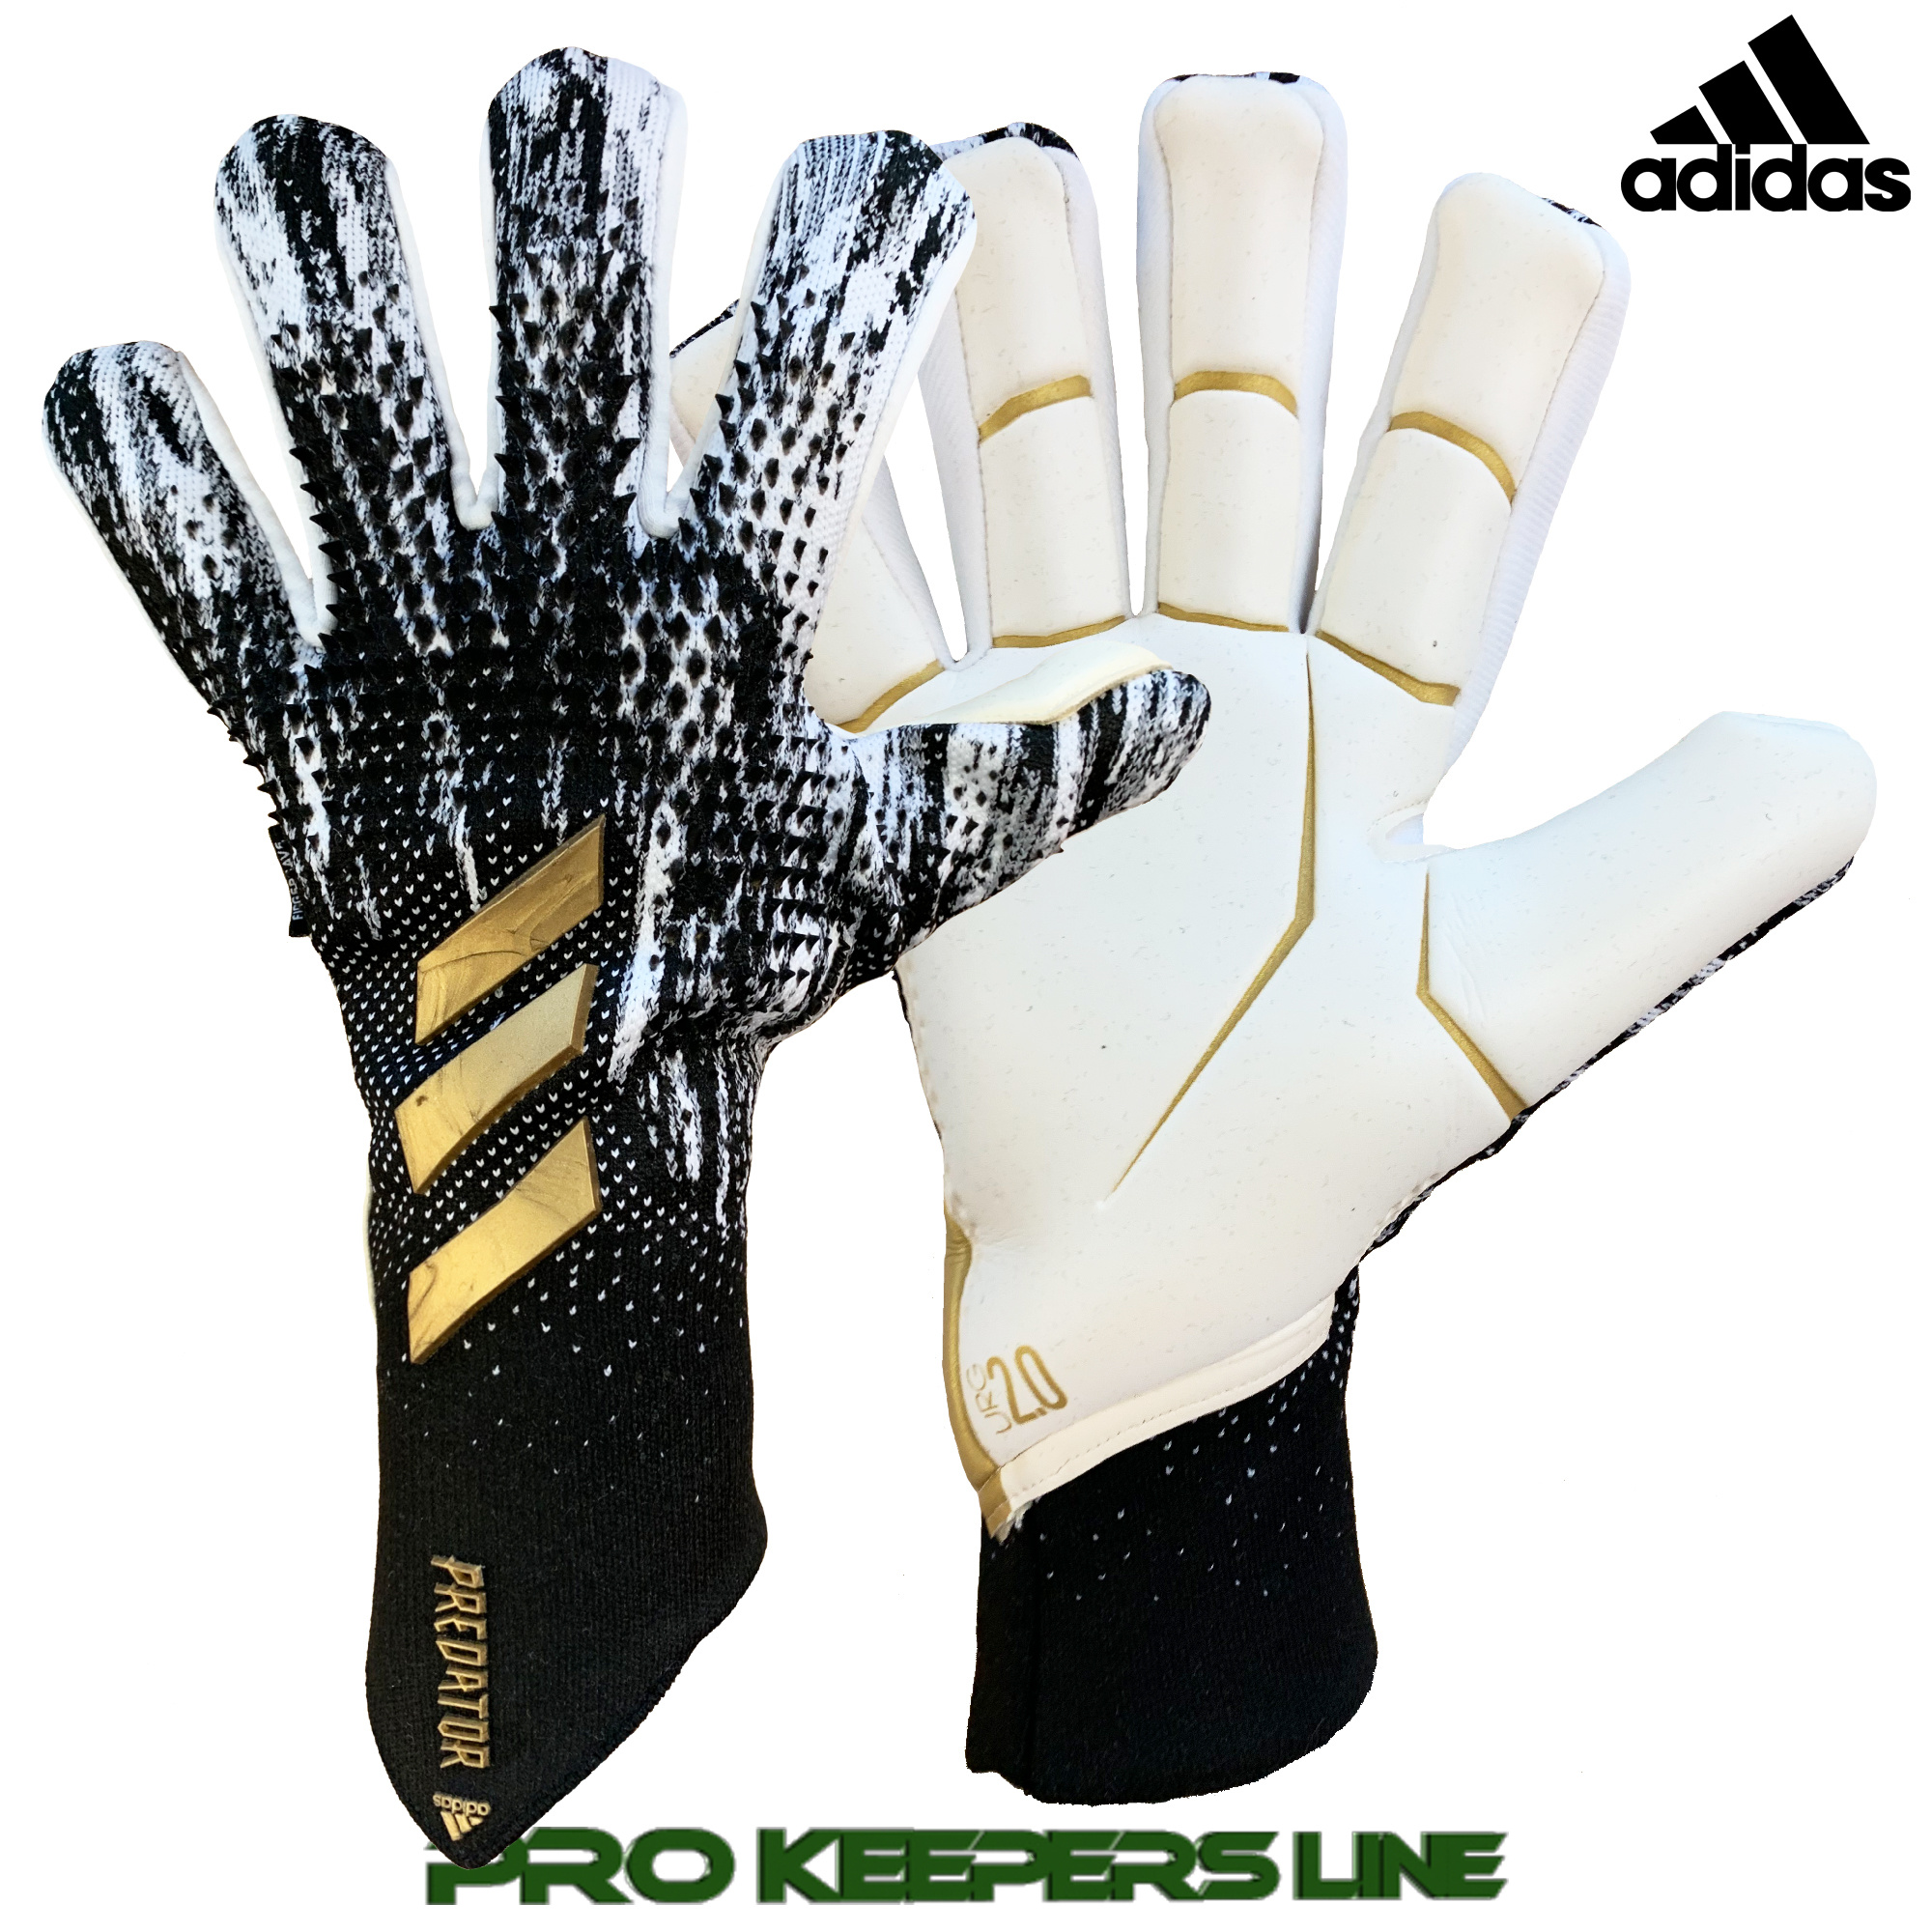 hazlo plano caos la carretera  ADIDAS PREDATOR GL PRO FINGERSAVE CORE BLACK/ CLOUD WHITE/ GOLD METALLIC  (FINGERPROTECTION) - Pro Keepers Line